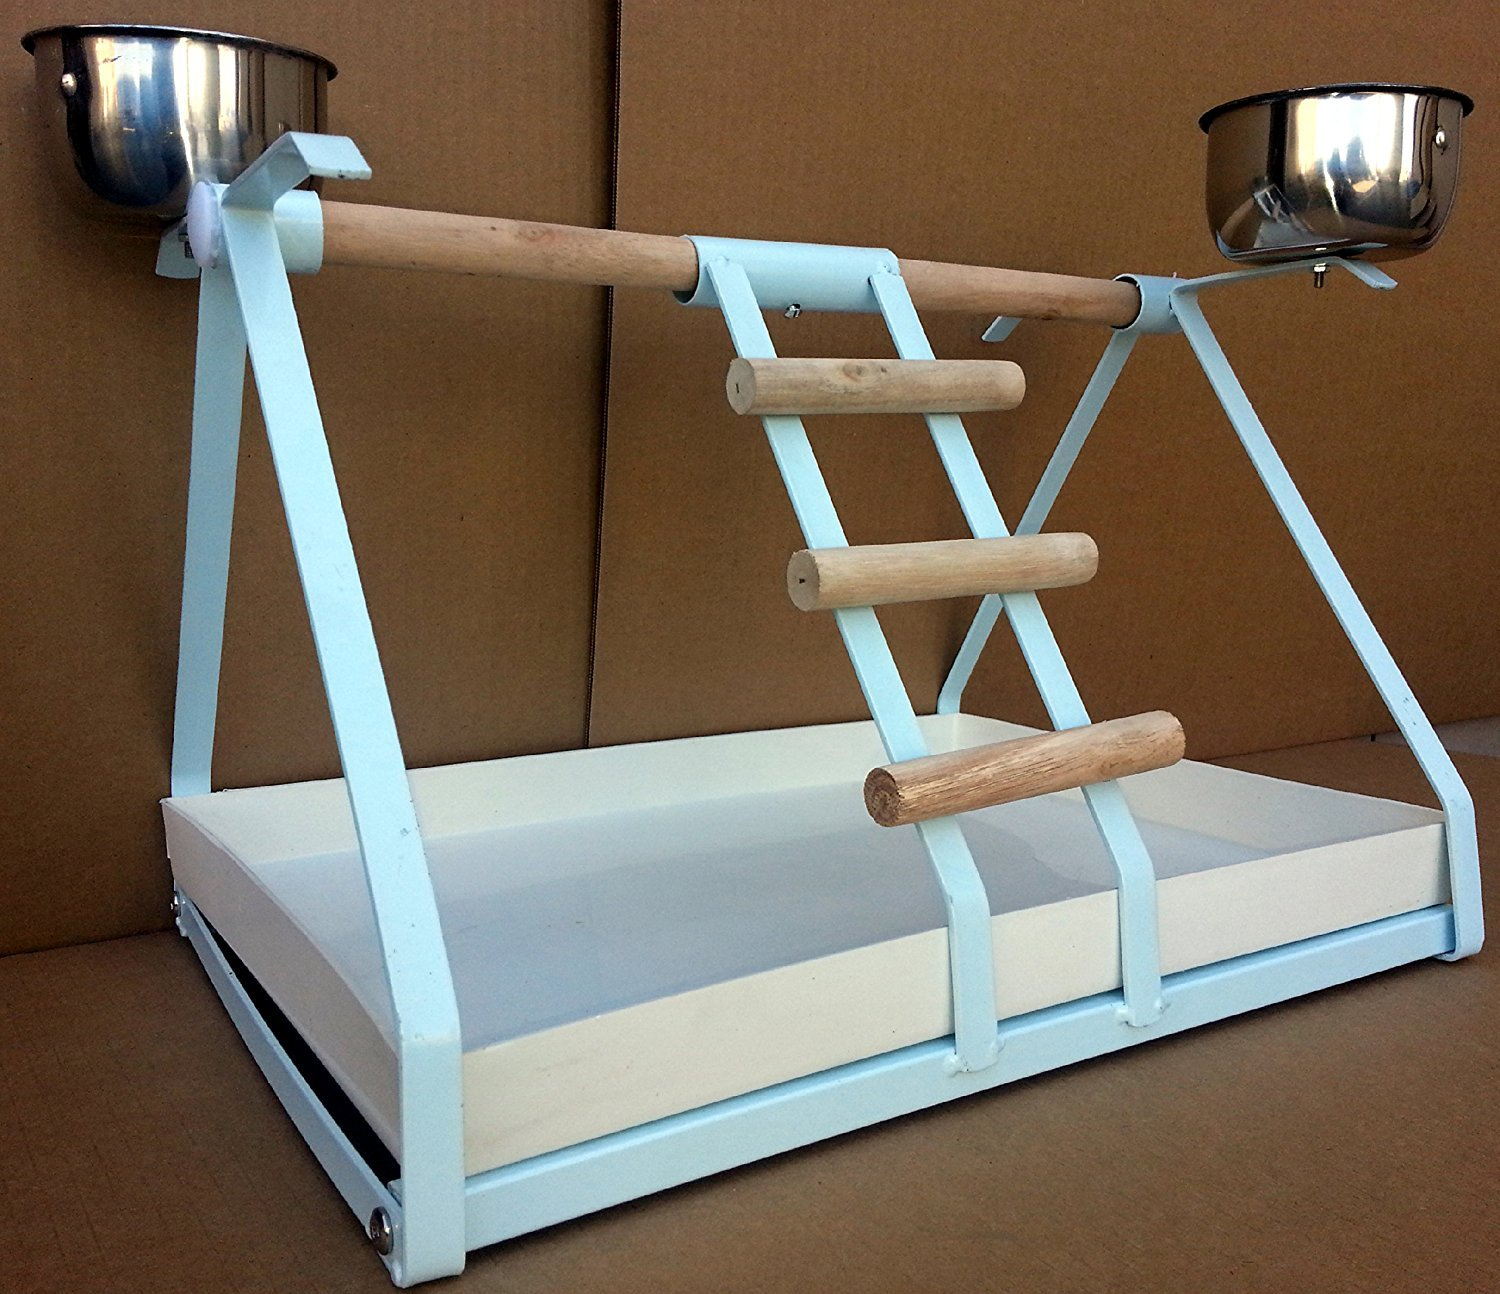 New Metal PLAYSTAND Play Gym with Stainless Steel Cups, Wood Perches and Tray for Small Parrot by Mcage